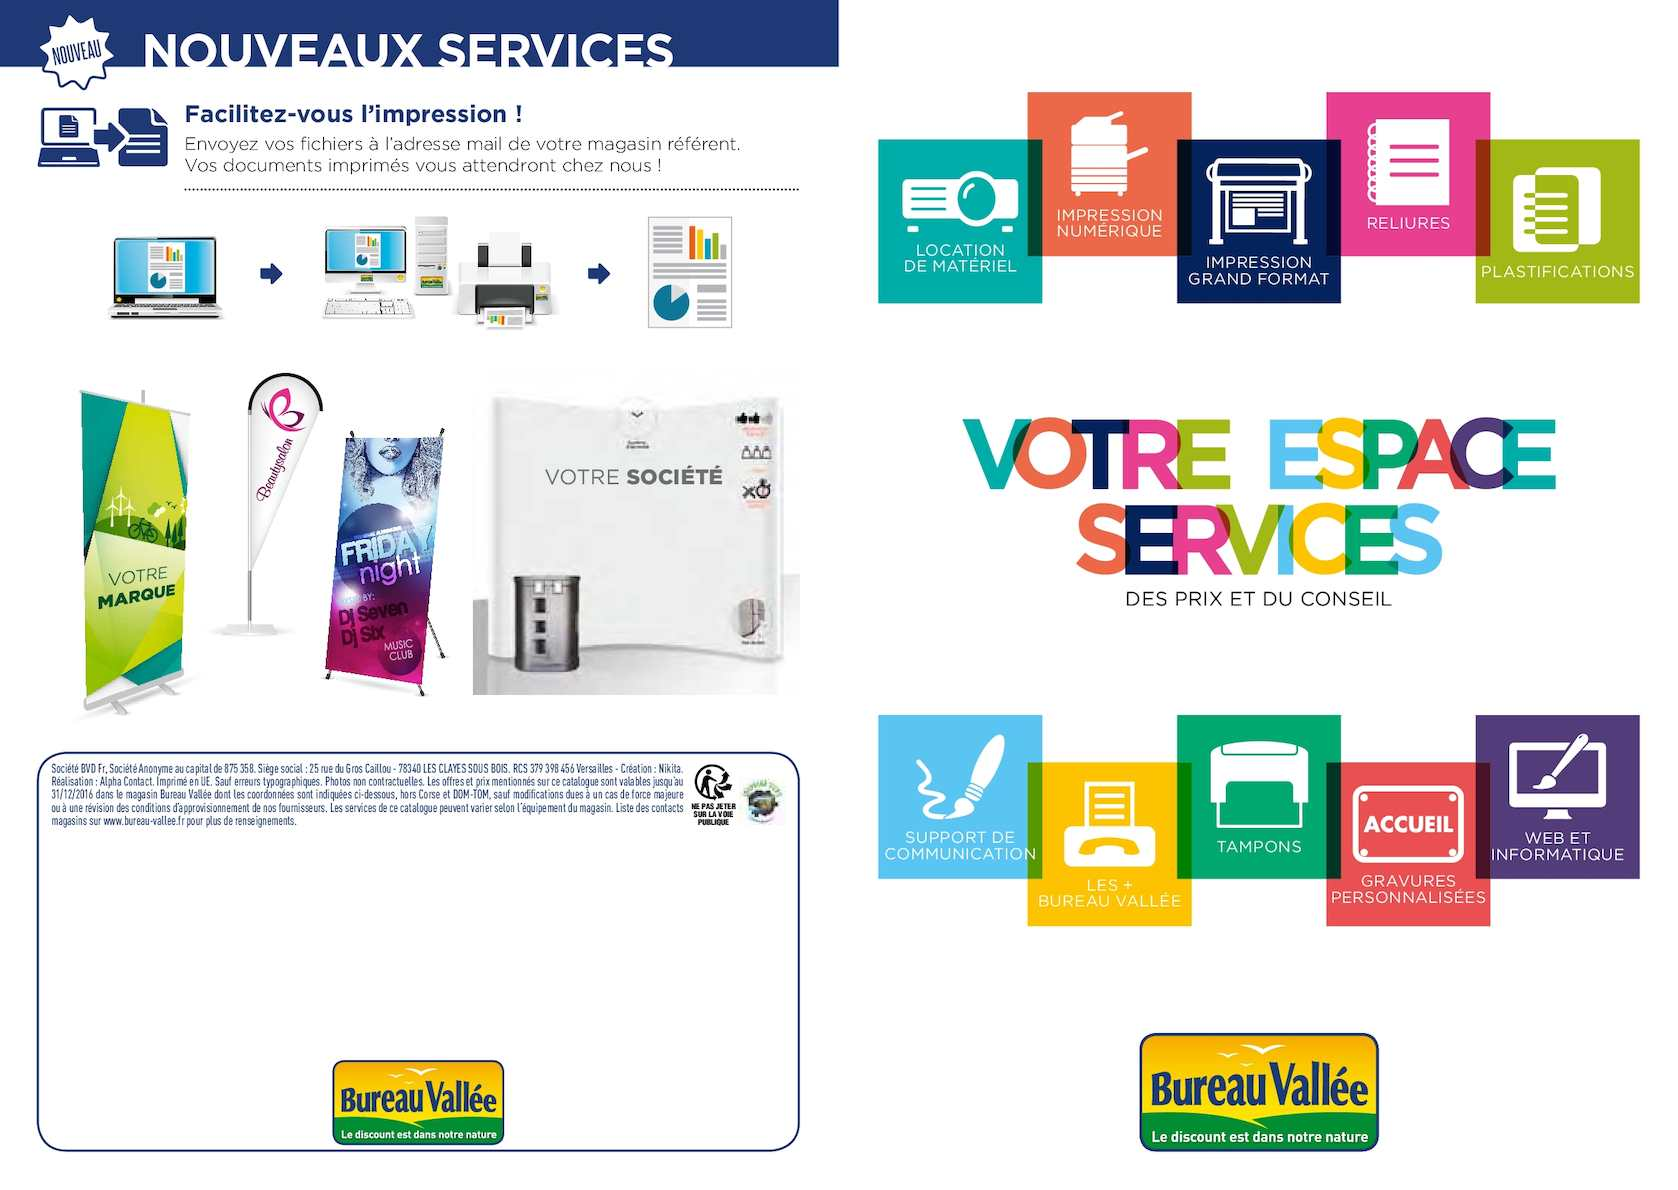 Vallée Bureau Catalogue Services Bureau Vallée Calameo Downloader